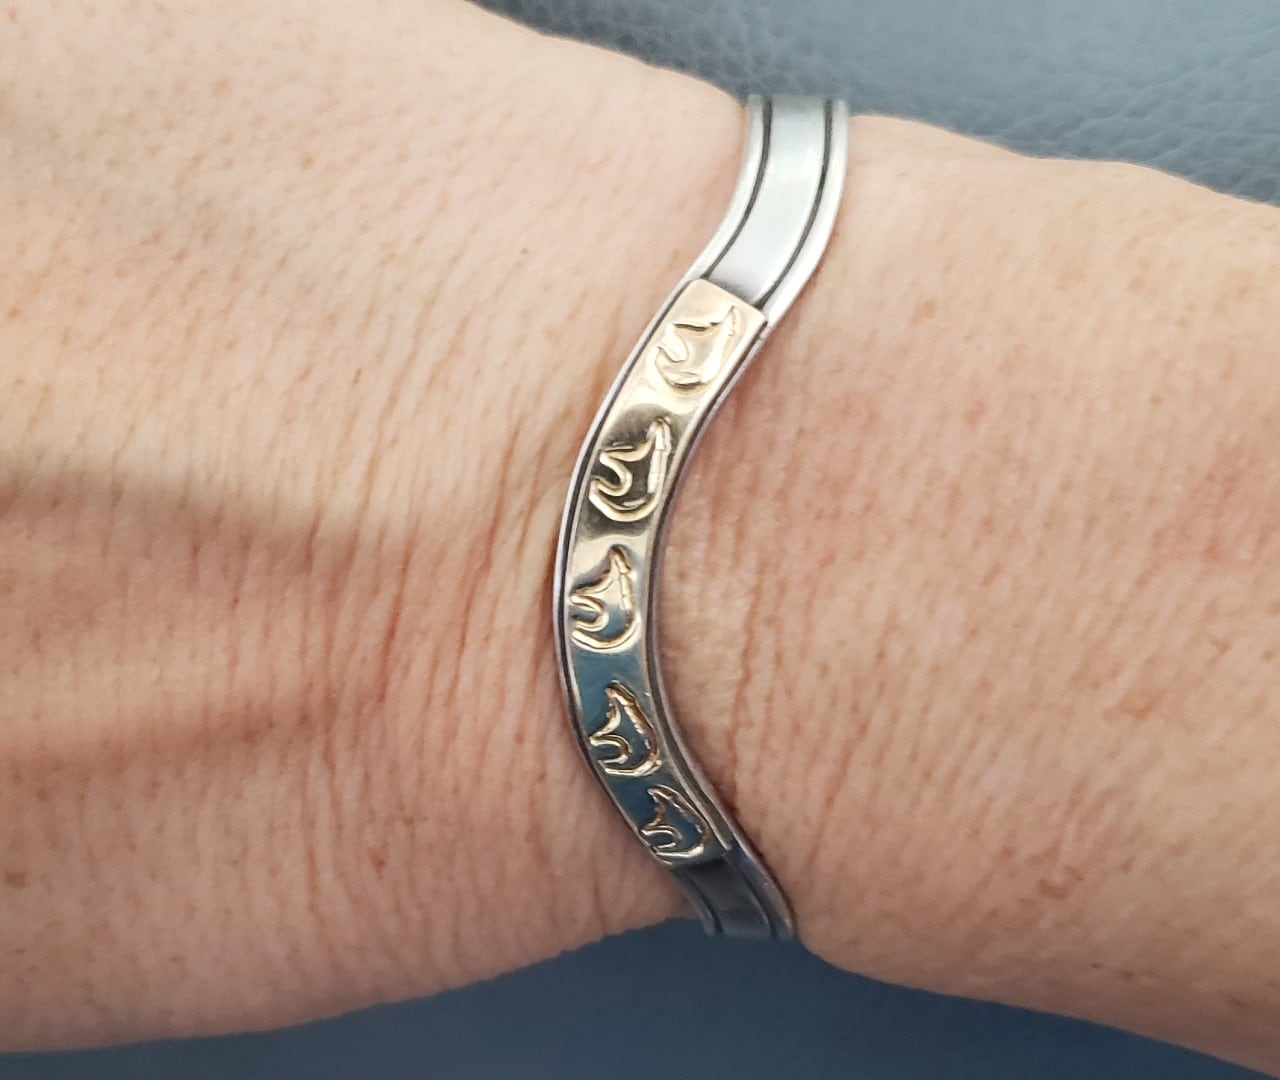 Silver cuff bracelet with gold overlay stamped with bear silhouette